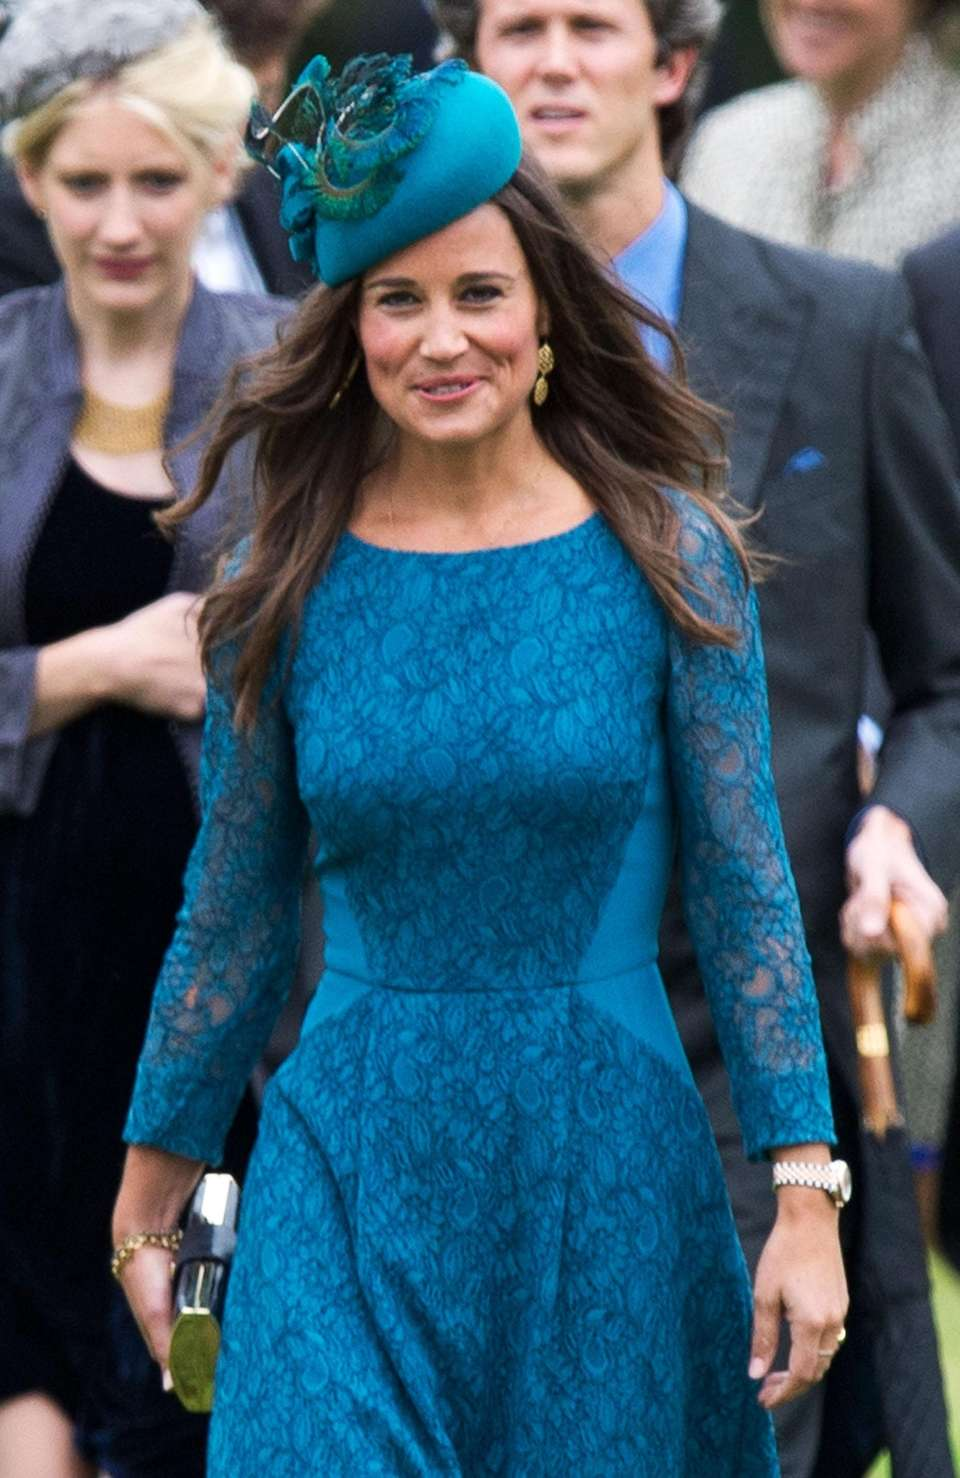 Pippa Middleton arrives at the wedding of James